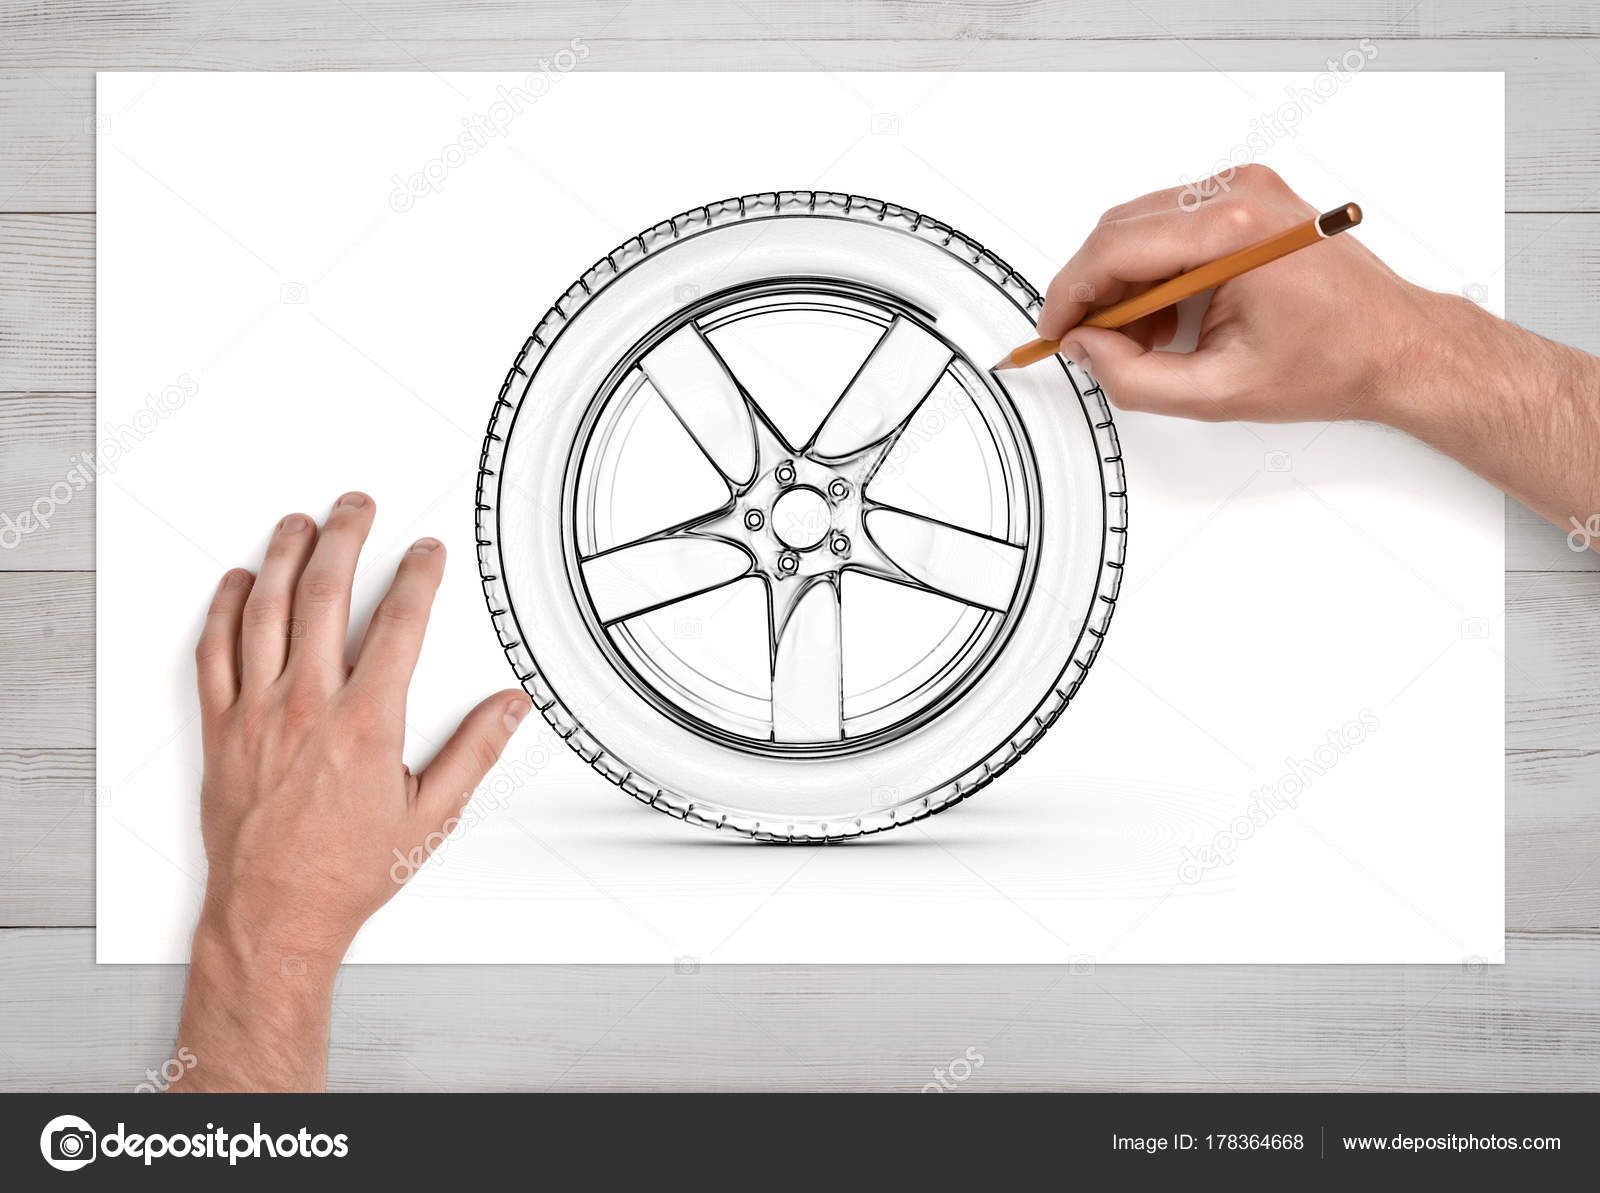 1600x1193 Two Male Hands In Close View As They Draw A Car Tire With A Pencil